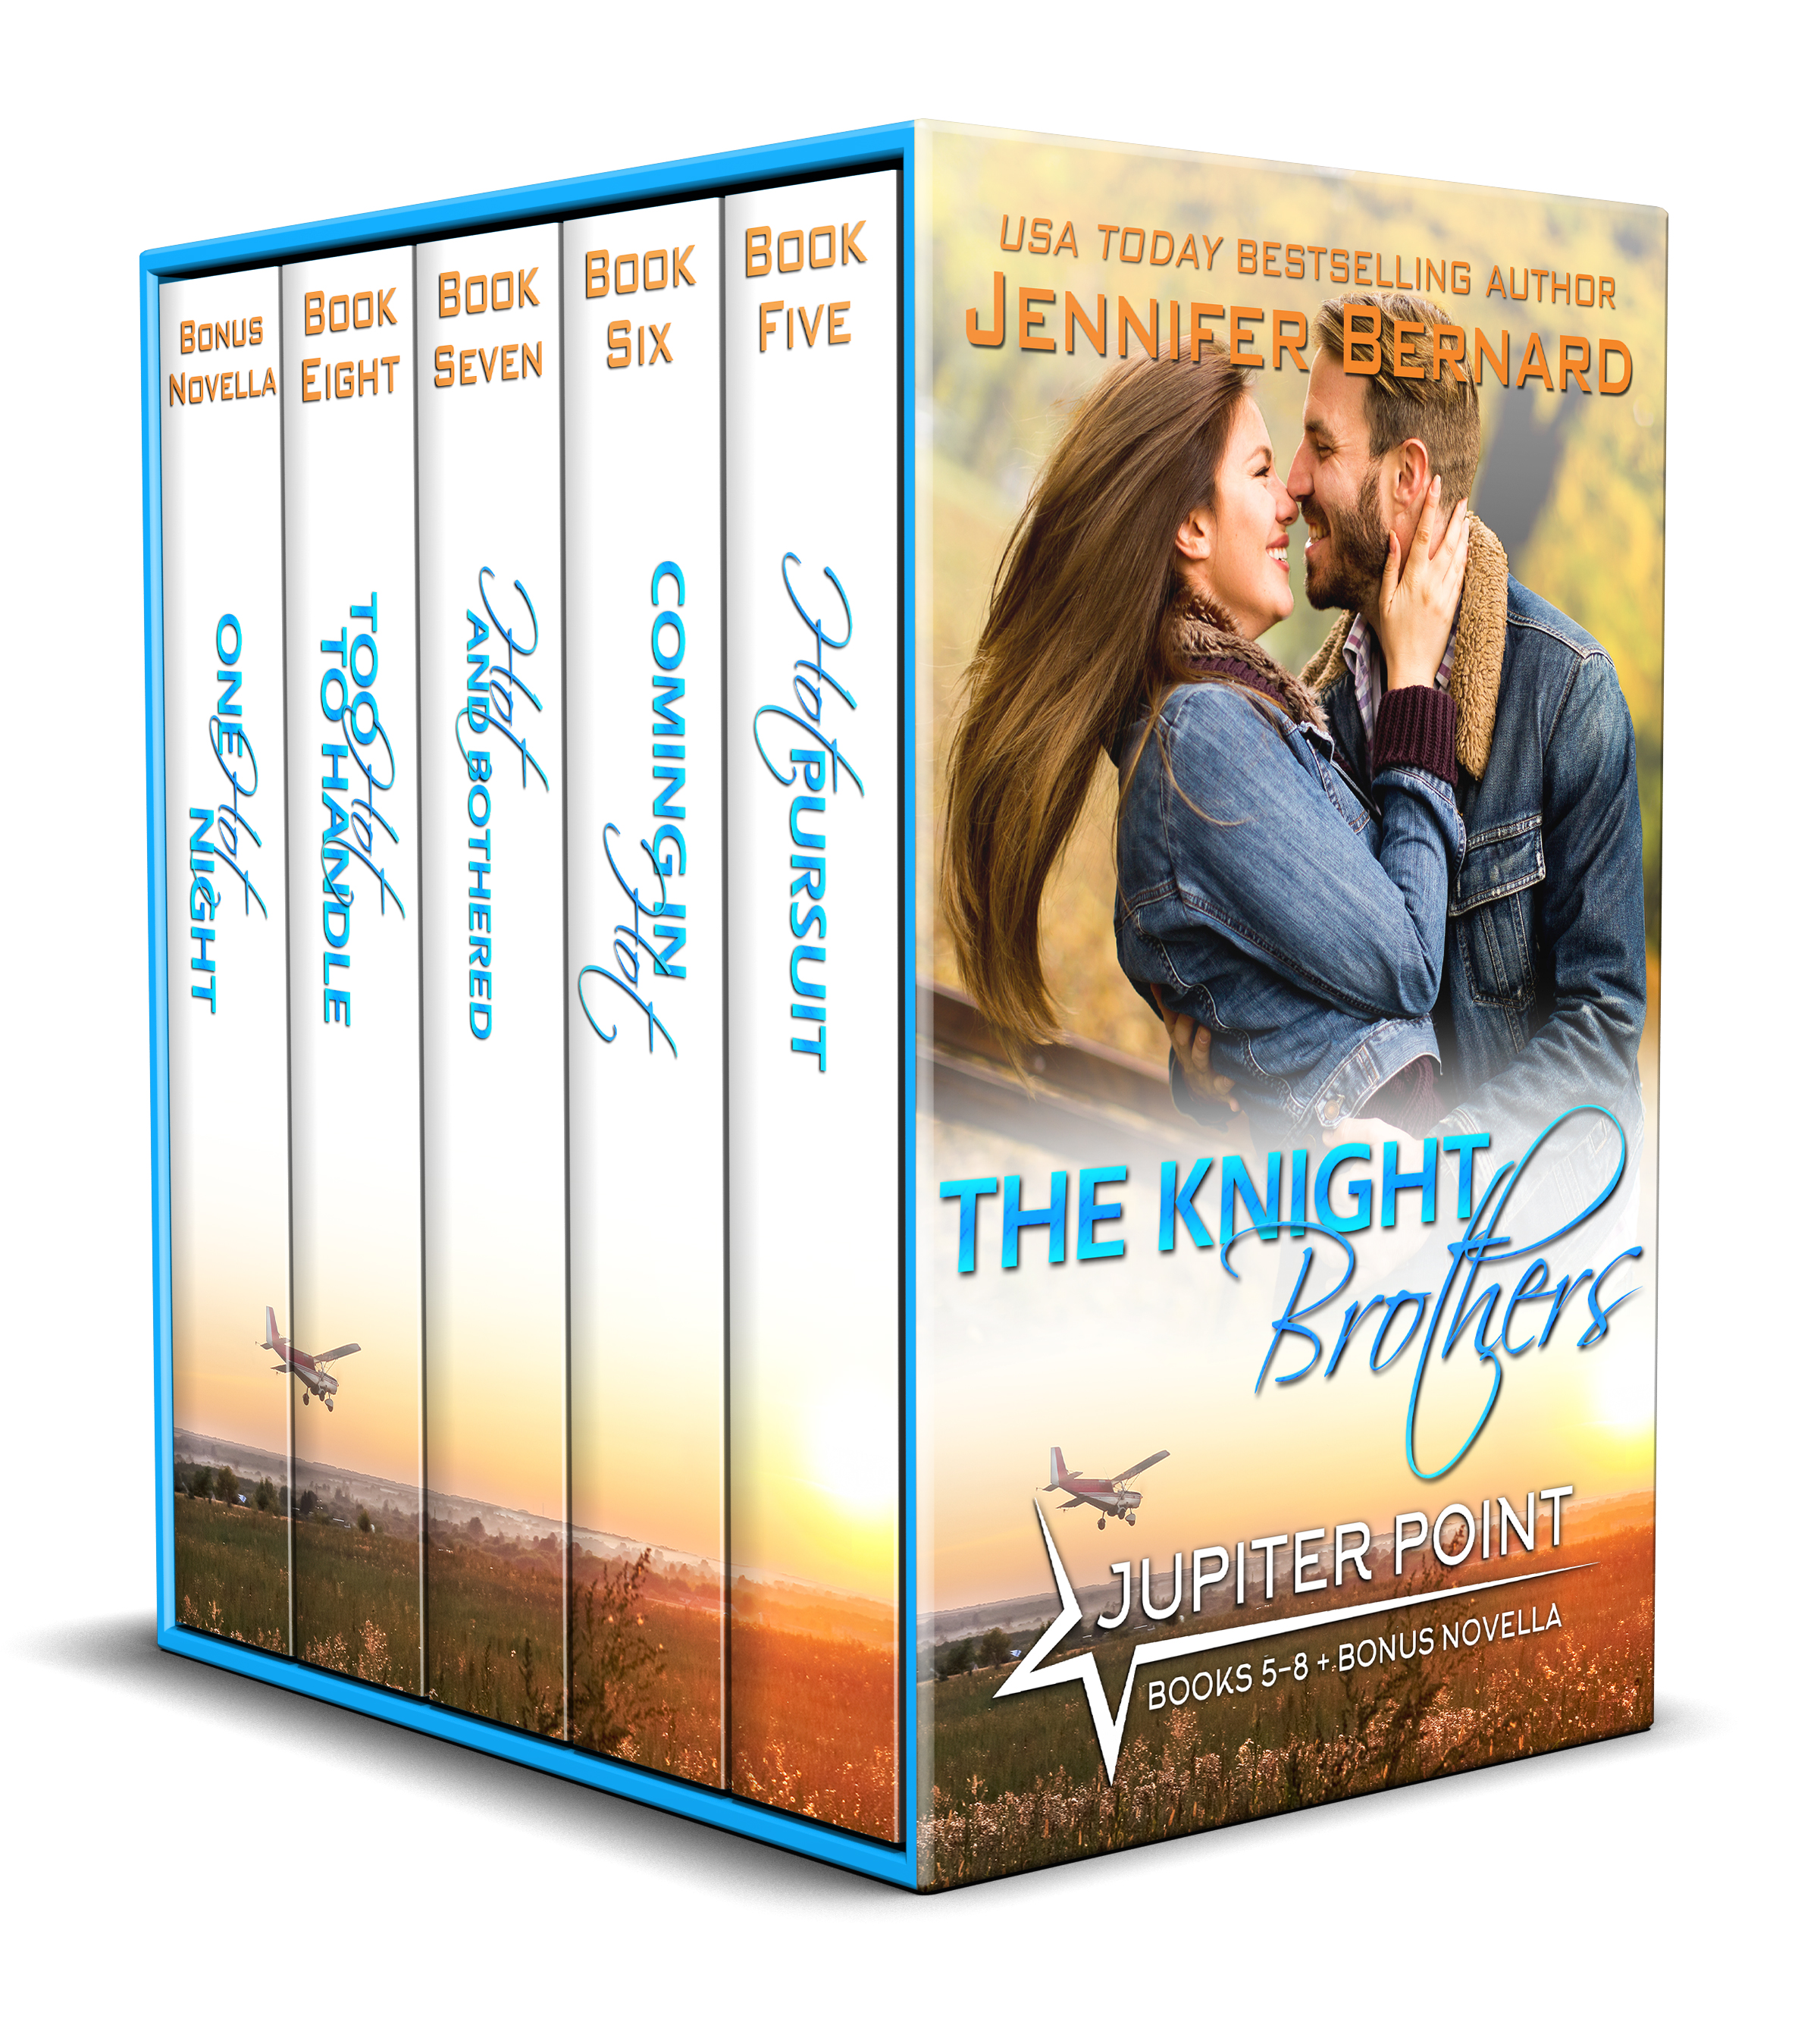 The Knight Brothers  3D boxed set 5-8 + Novella.jpg